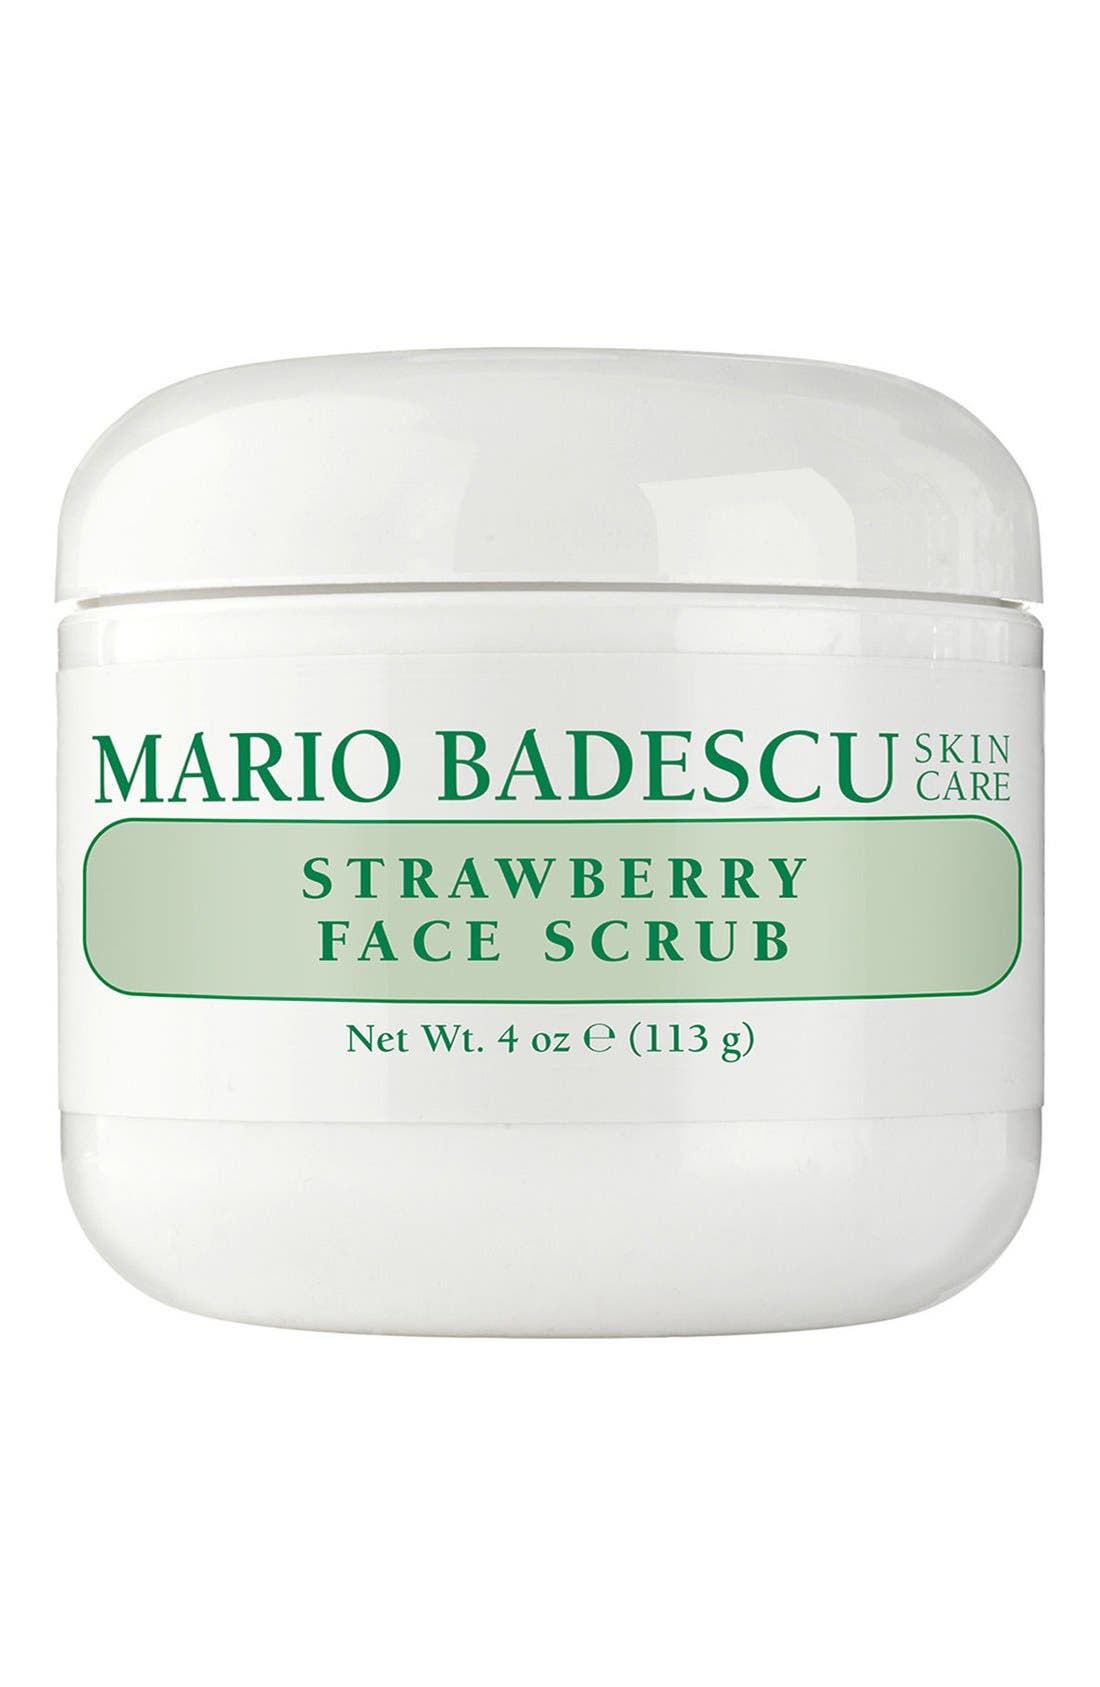 What it is: A delicious and decadent face scrub that naturally exfoliates dull, tired skin. What it does: It gently buffs away dead skin cells with non-irritating strawberry seeds and other nourishing botanicals to reveal a softer and more radiant complexion. How to use: Use light pressure to apply the scrub onto your skin. Massage all areas of the face using upward, circular motions for 30 seconds, then rinse with warm water. For best results,